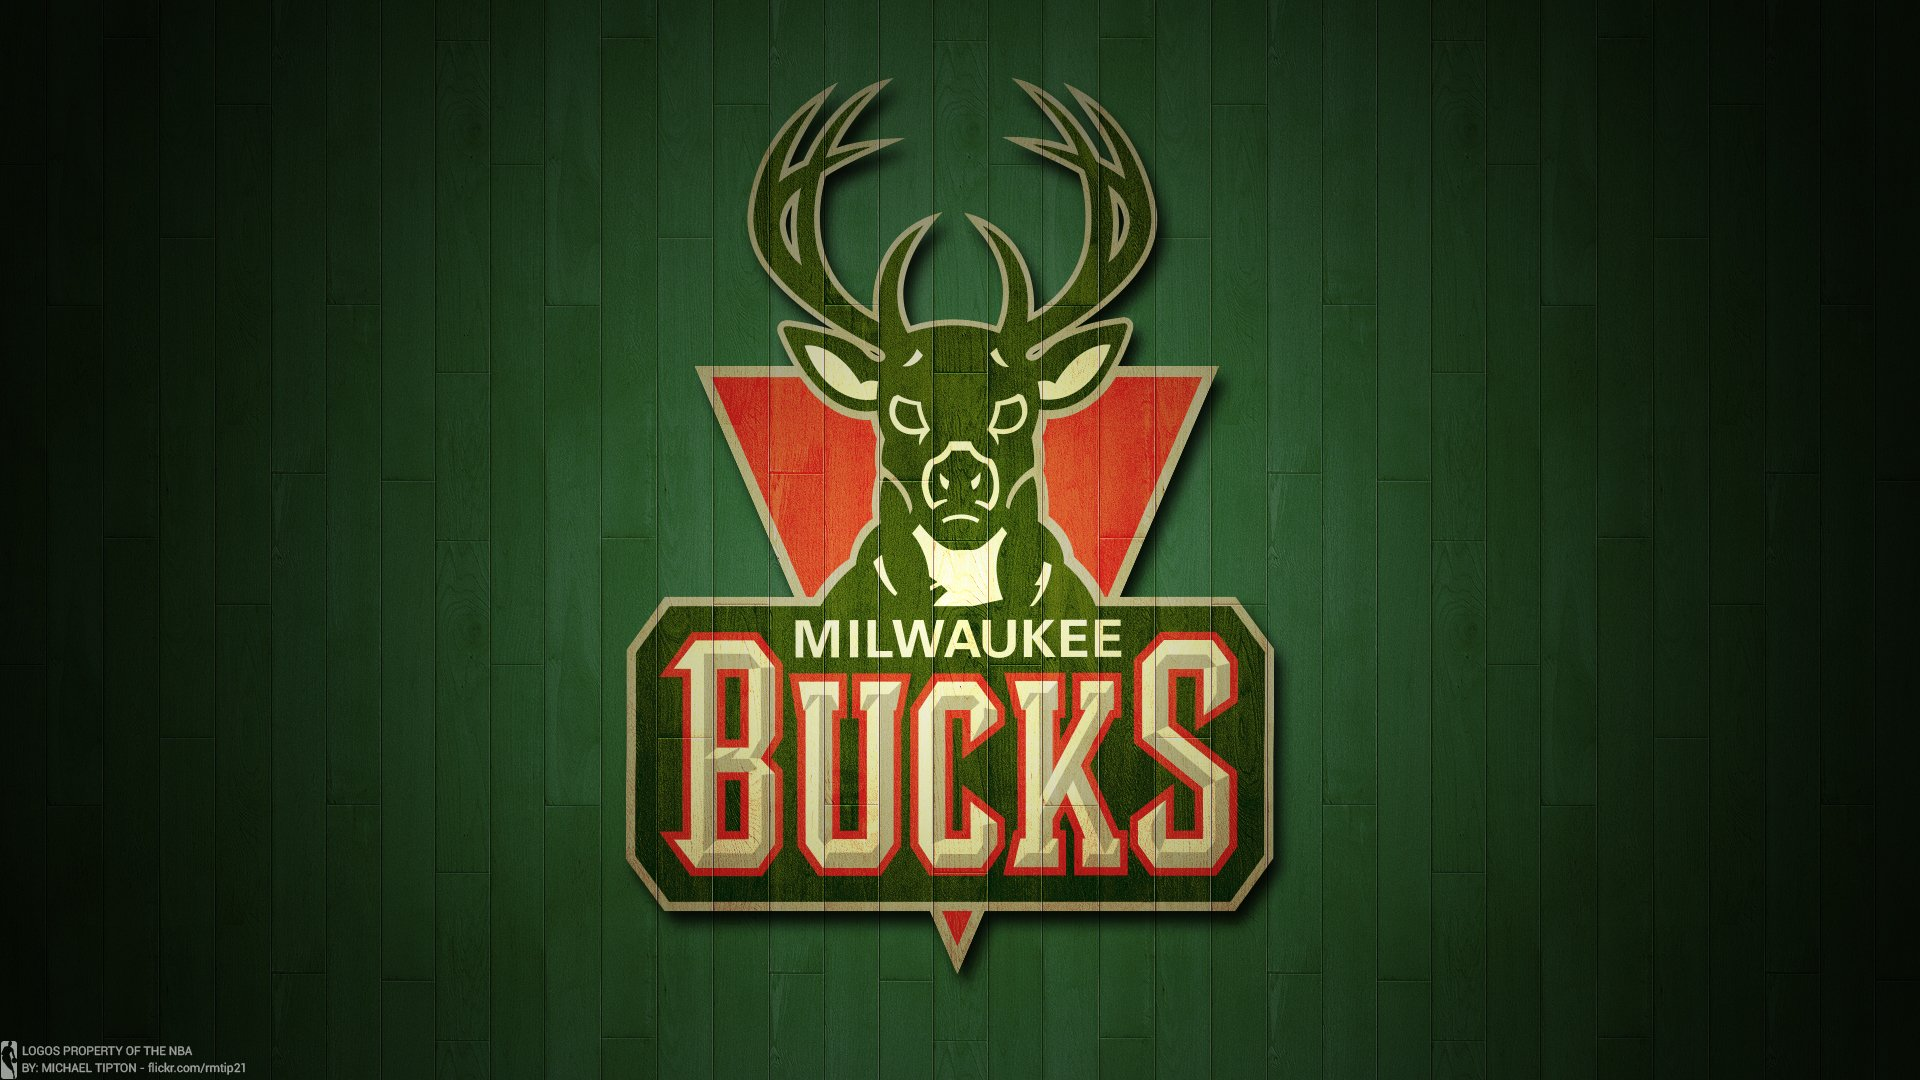 Milwaukee Bucks Basketball Team HD Wallpaper